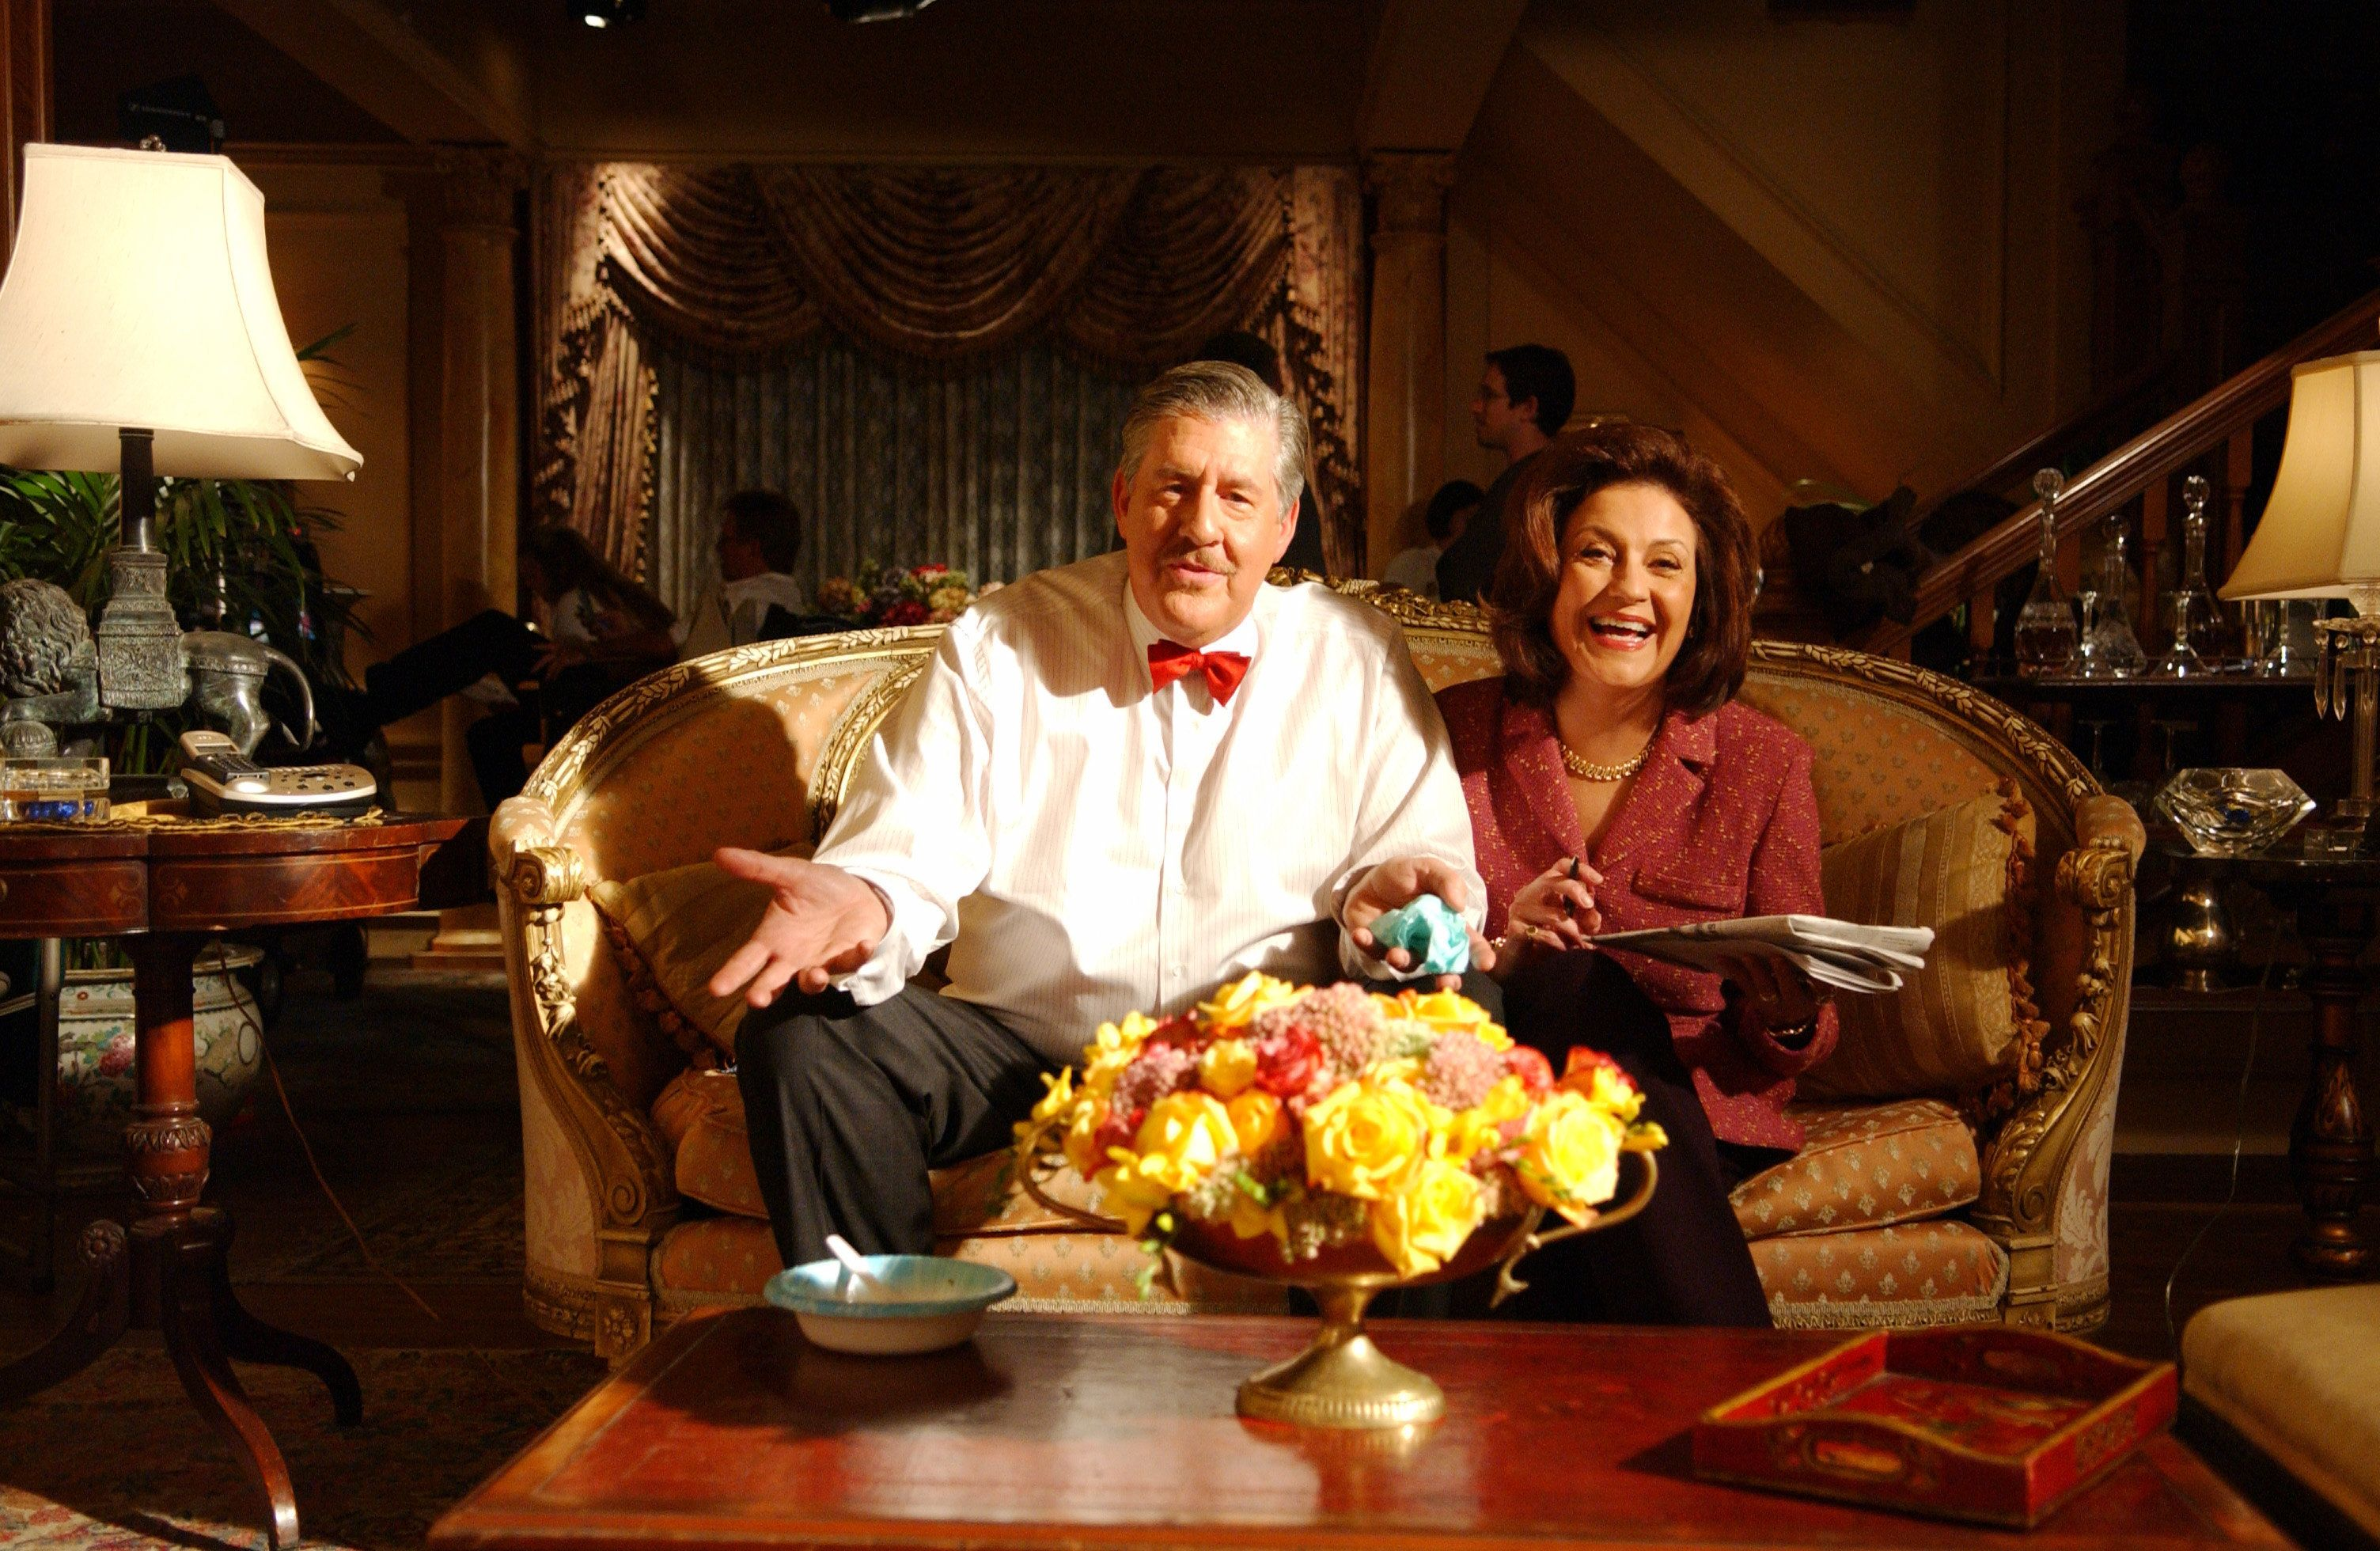 Edward Herrmann as Richard sitting on couch with Kelly Bishop as Emily. (Photo by Patrick Ecclesine/Warner Bros./Getty Images